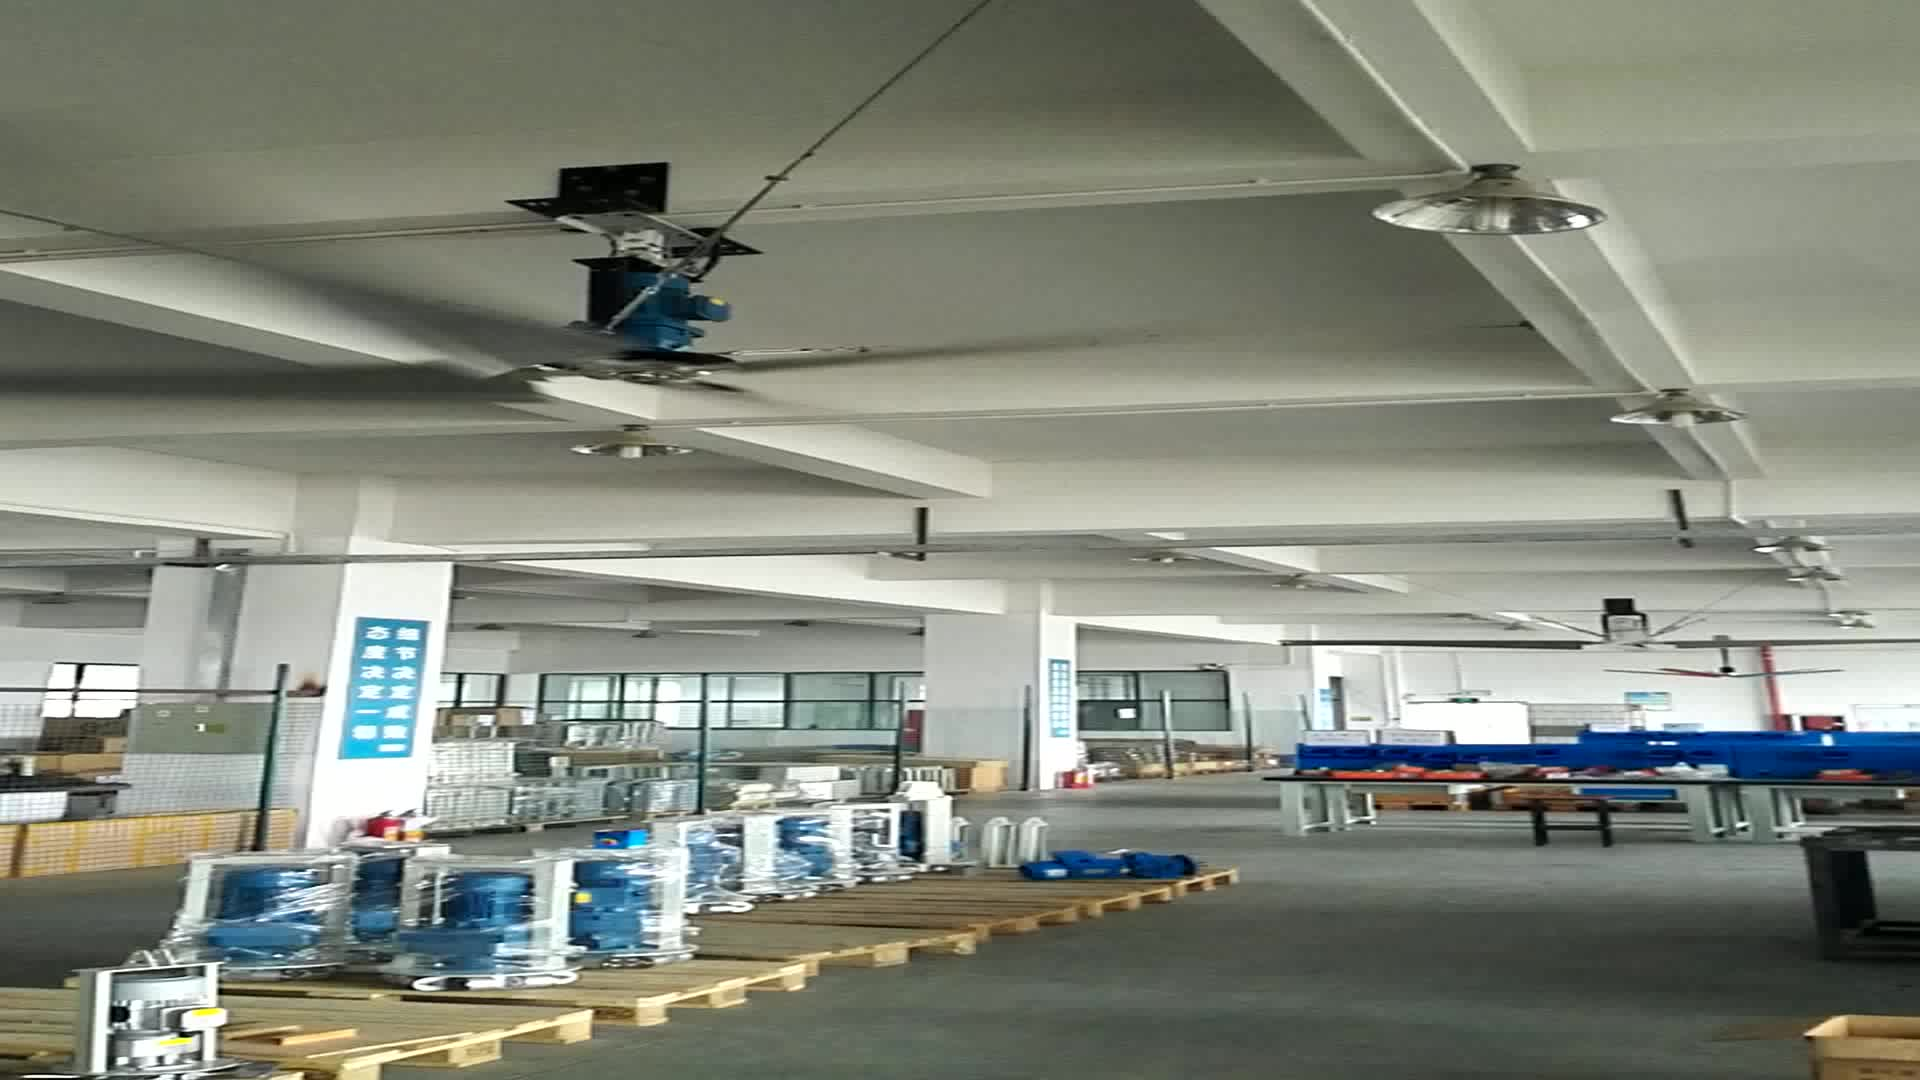 Big Ceiling Fan 24 Ft High Volume Low Speed Fans For Industrial